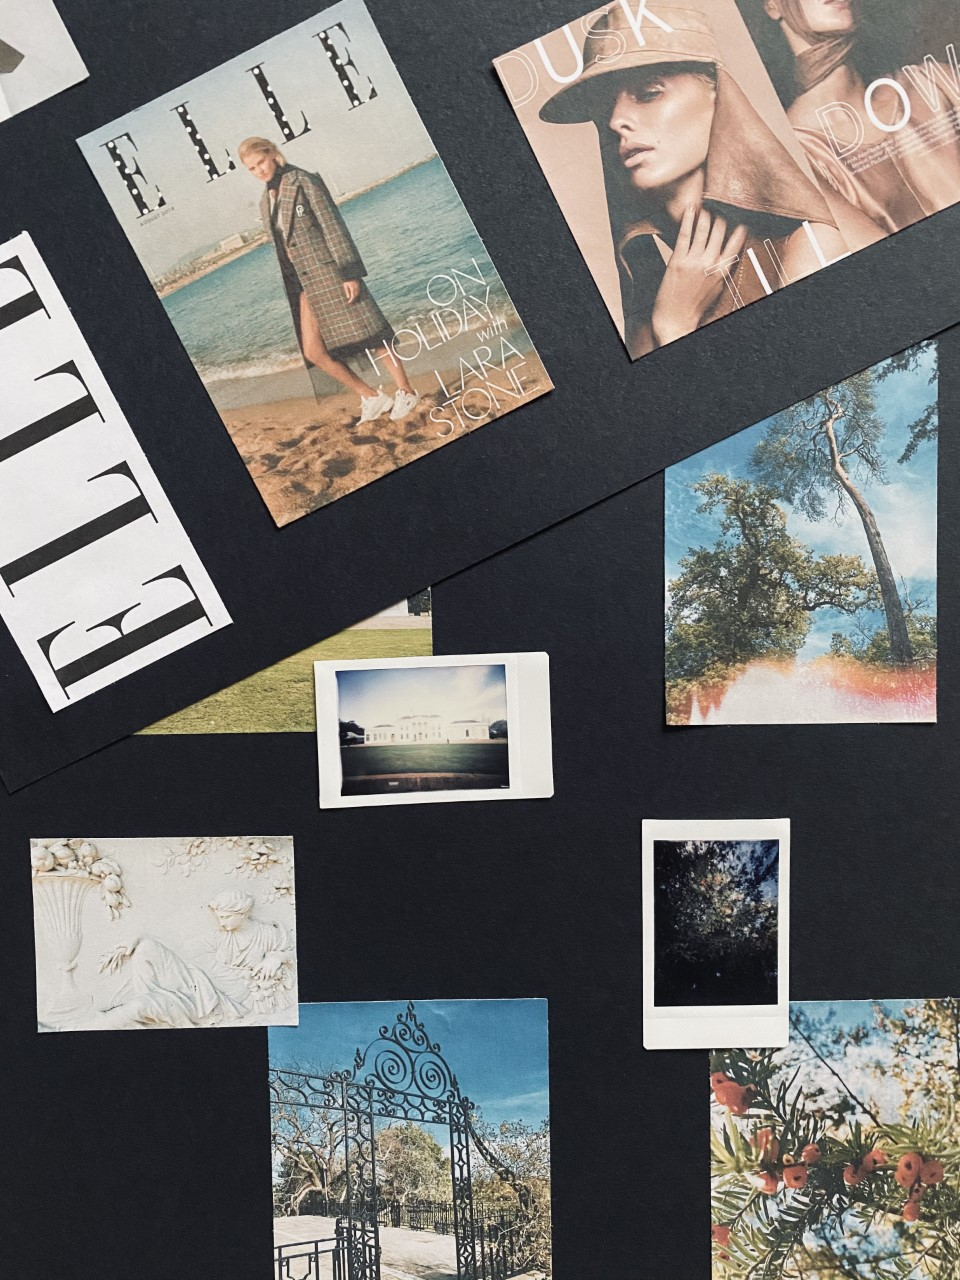 A mood-board by Molly Hood full of fashion magazine covers